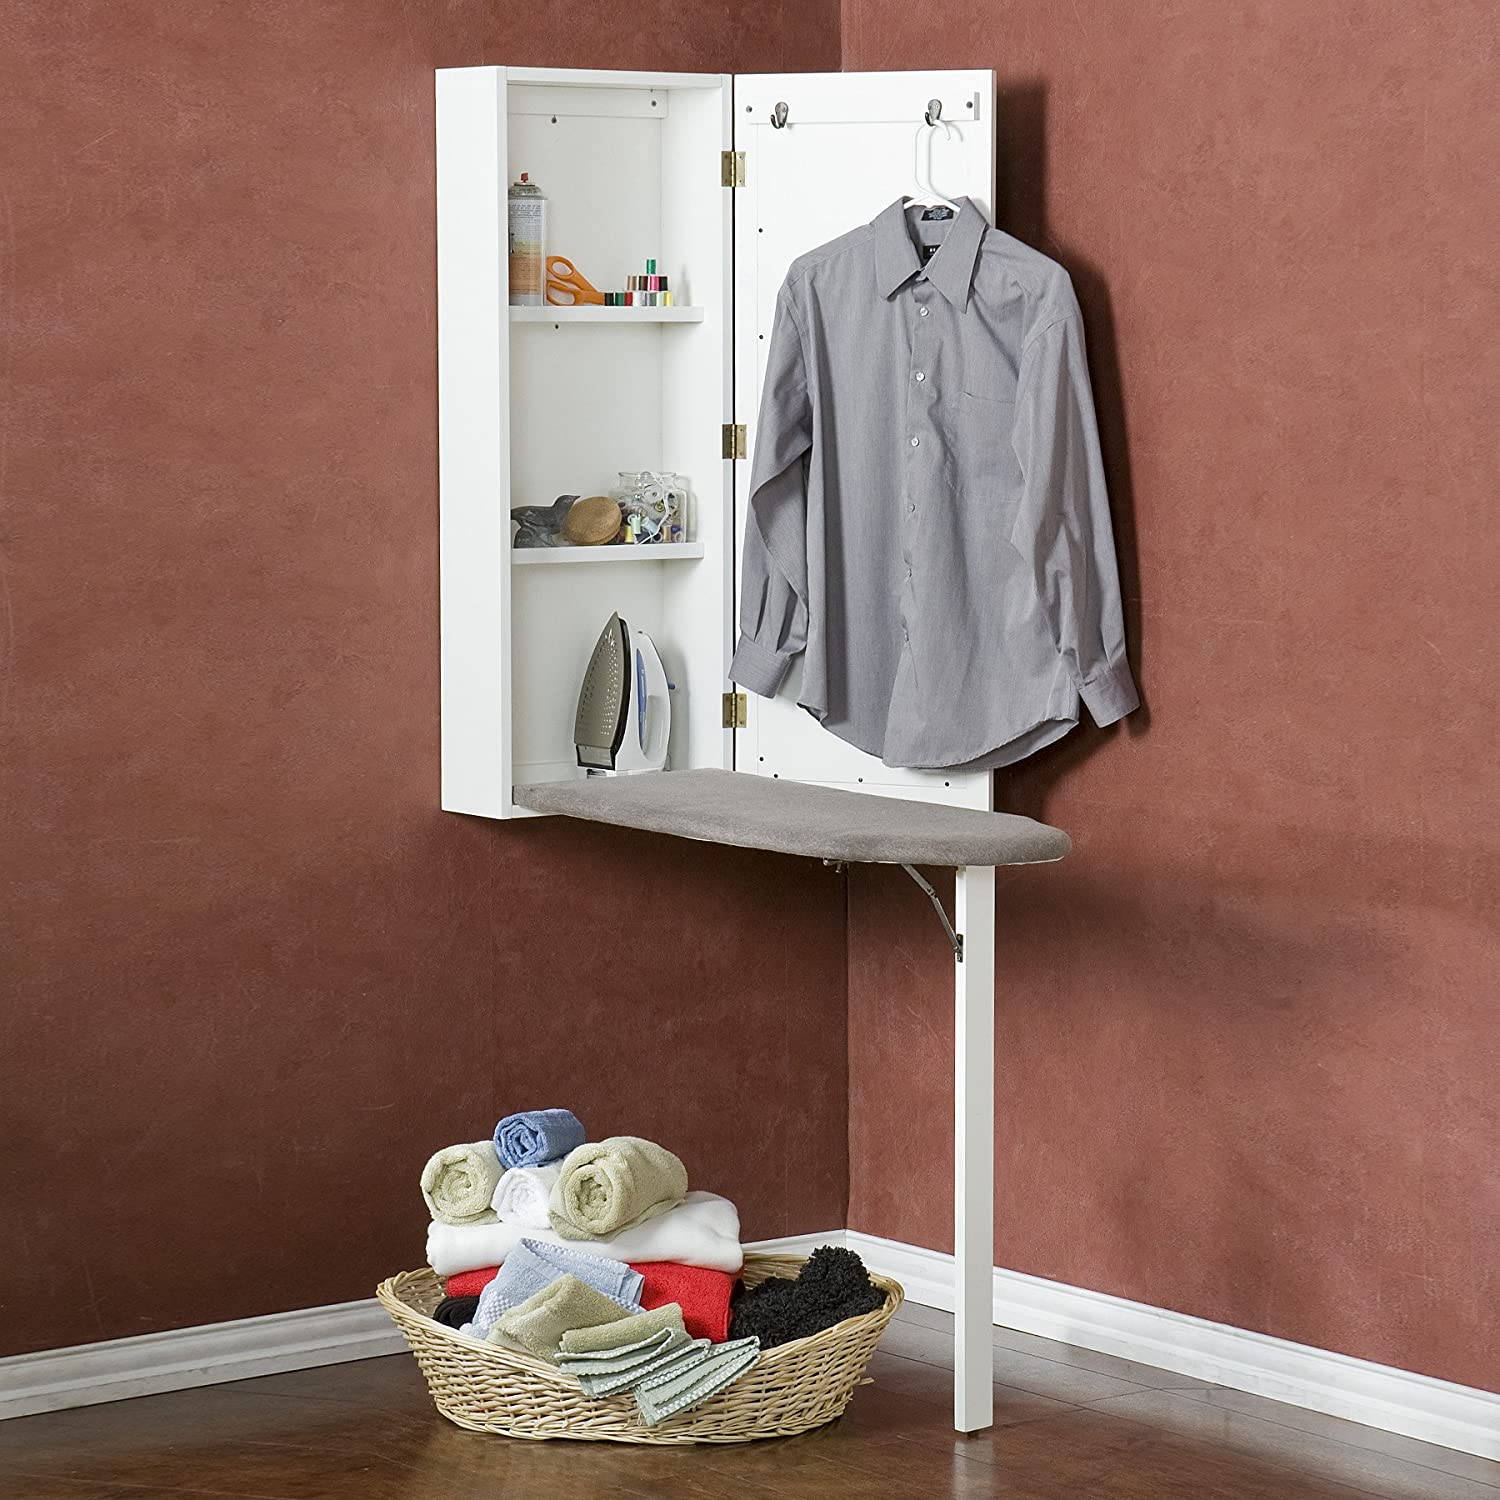 Wall Mount Ironing Center: